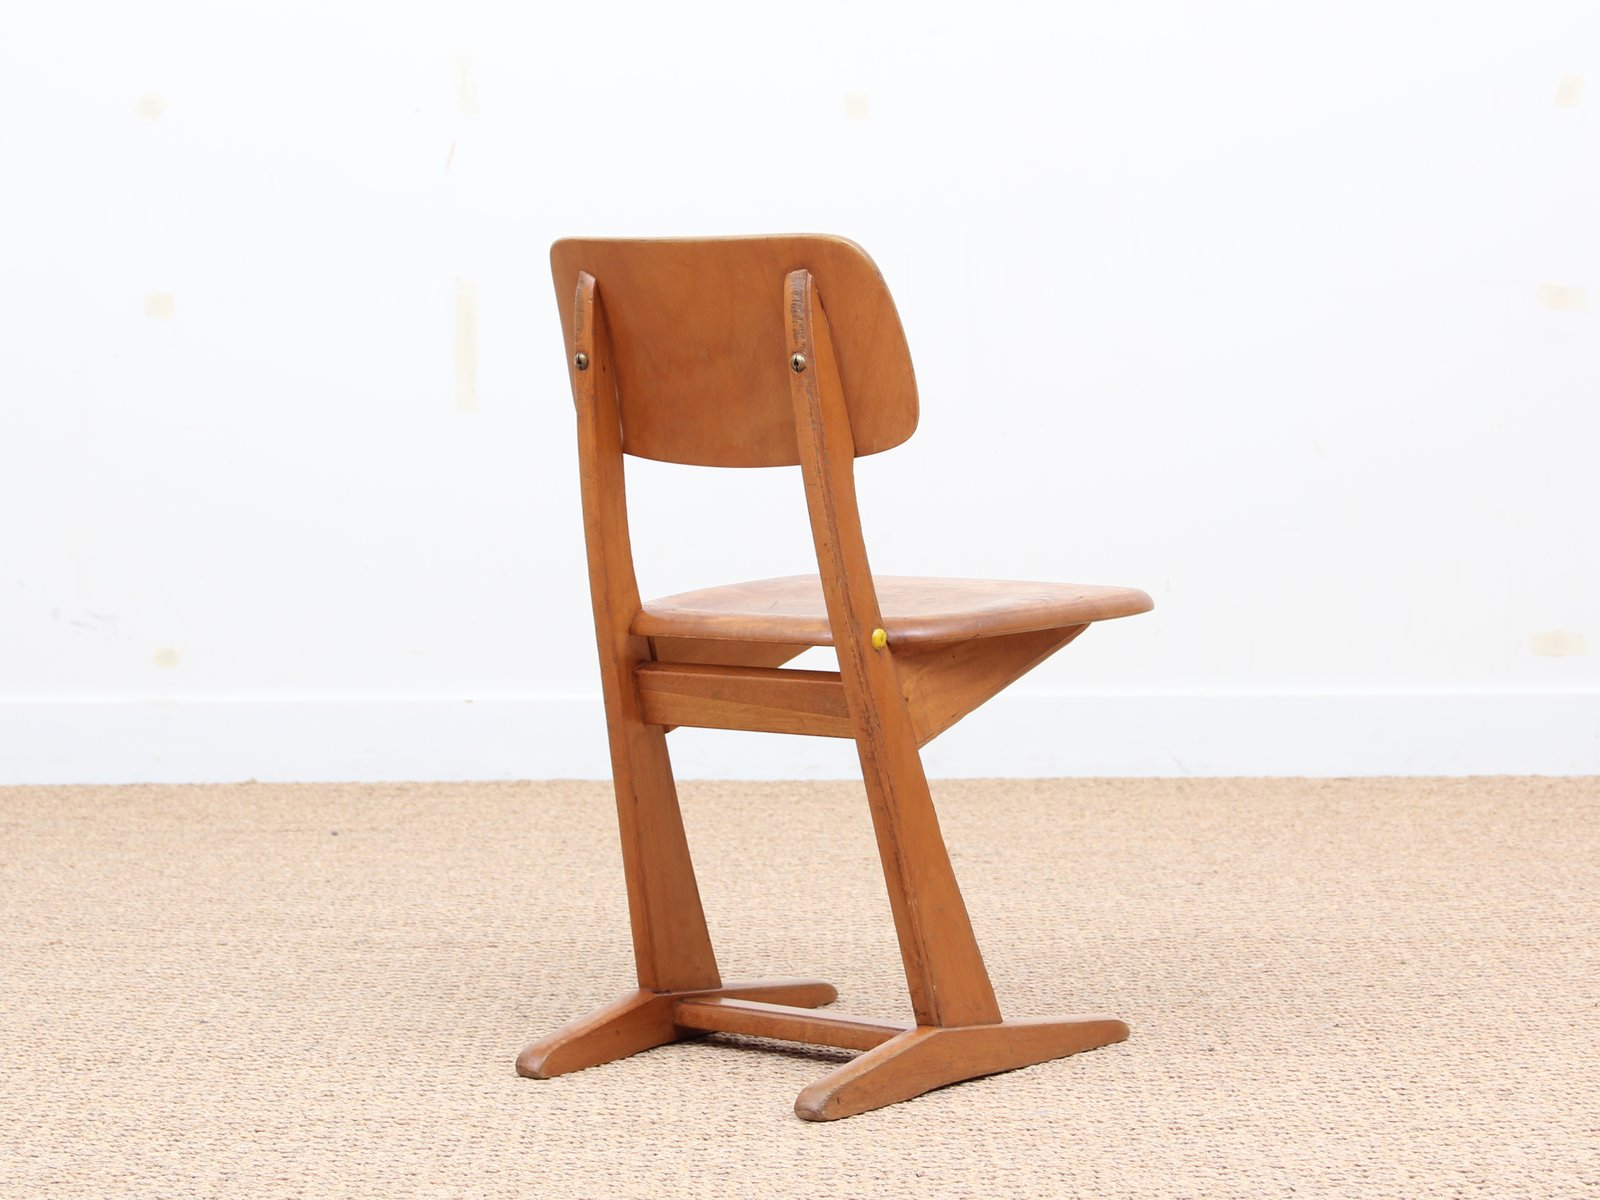 Mid Century German School Chair by Casala 1965 for sale at Pamono